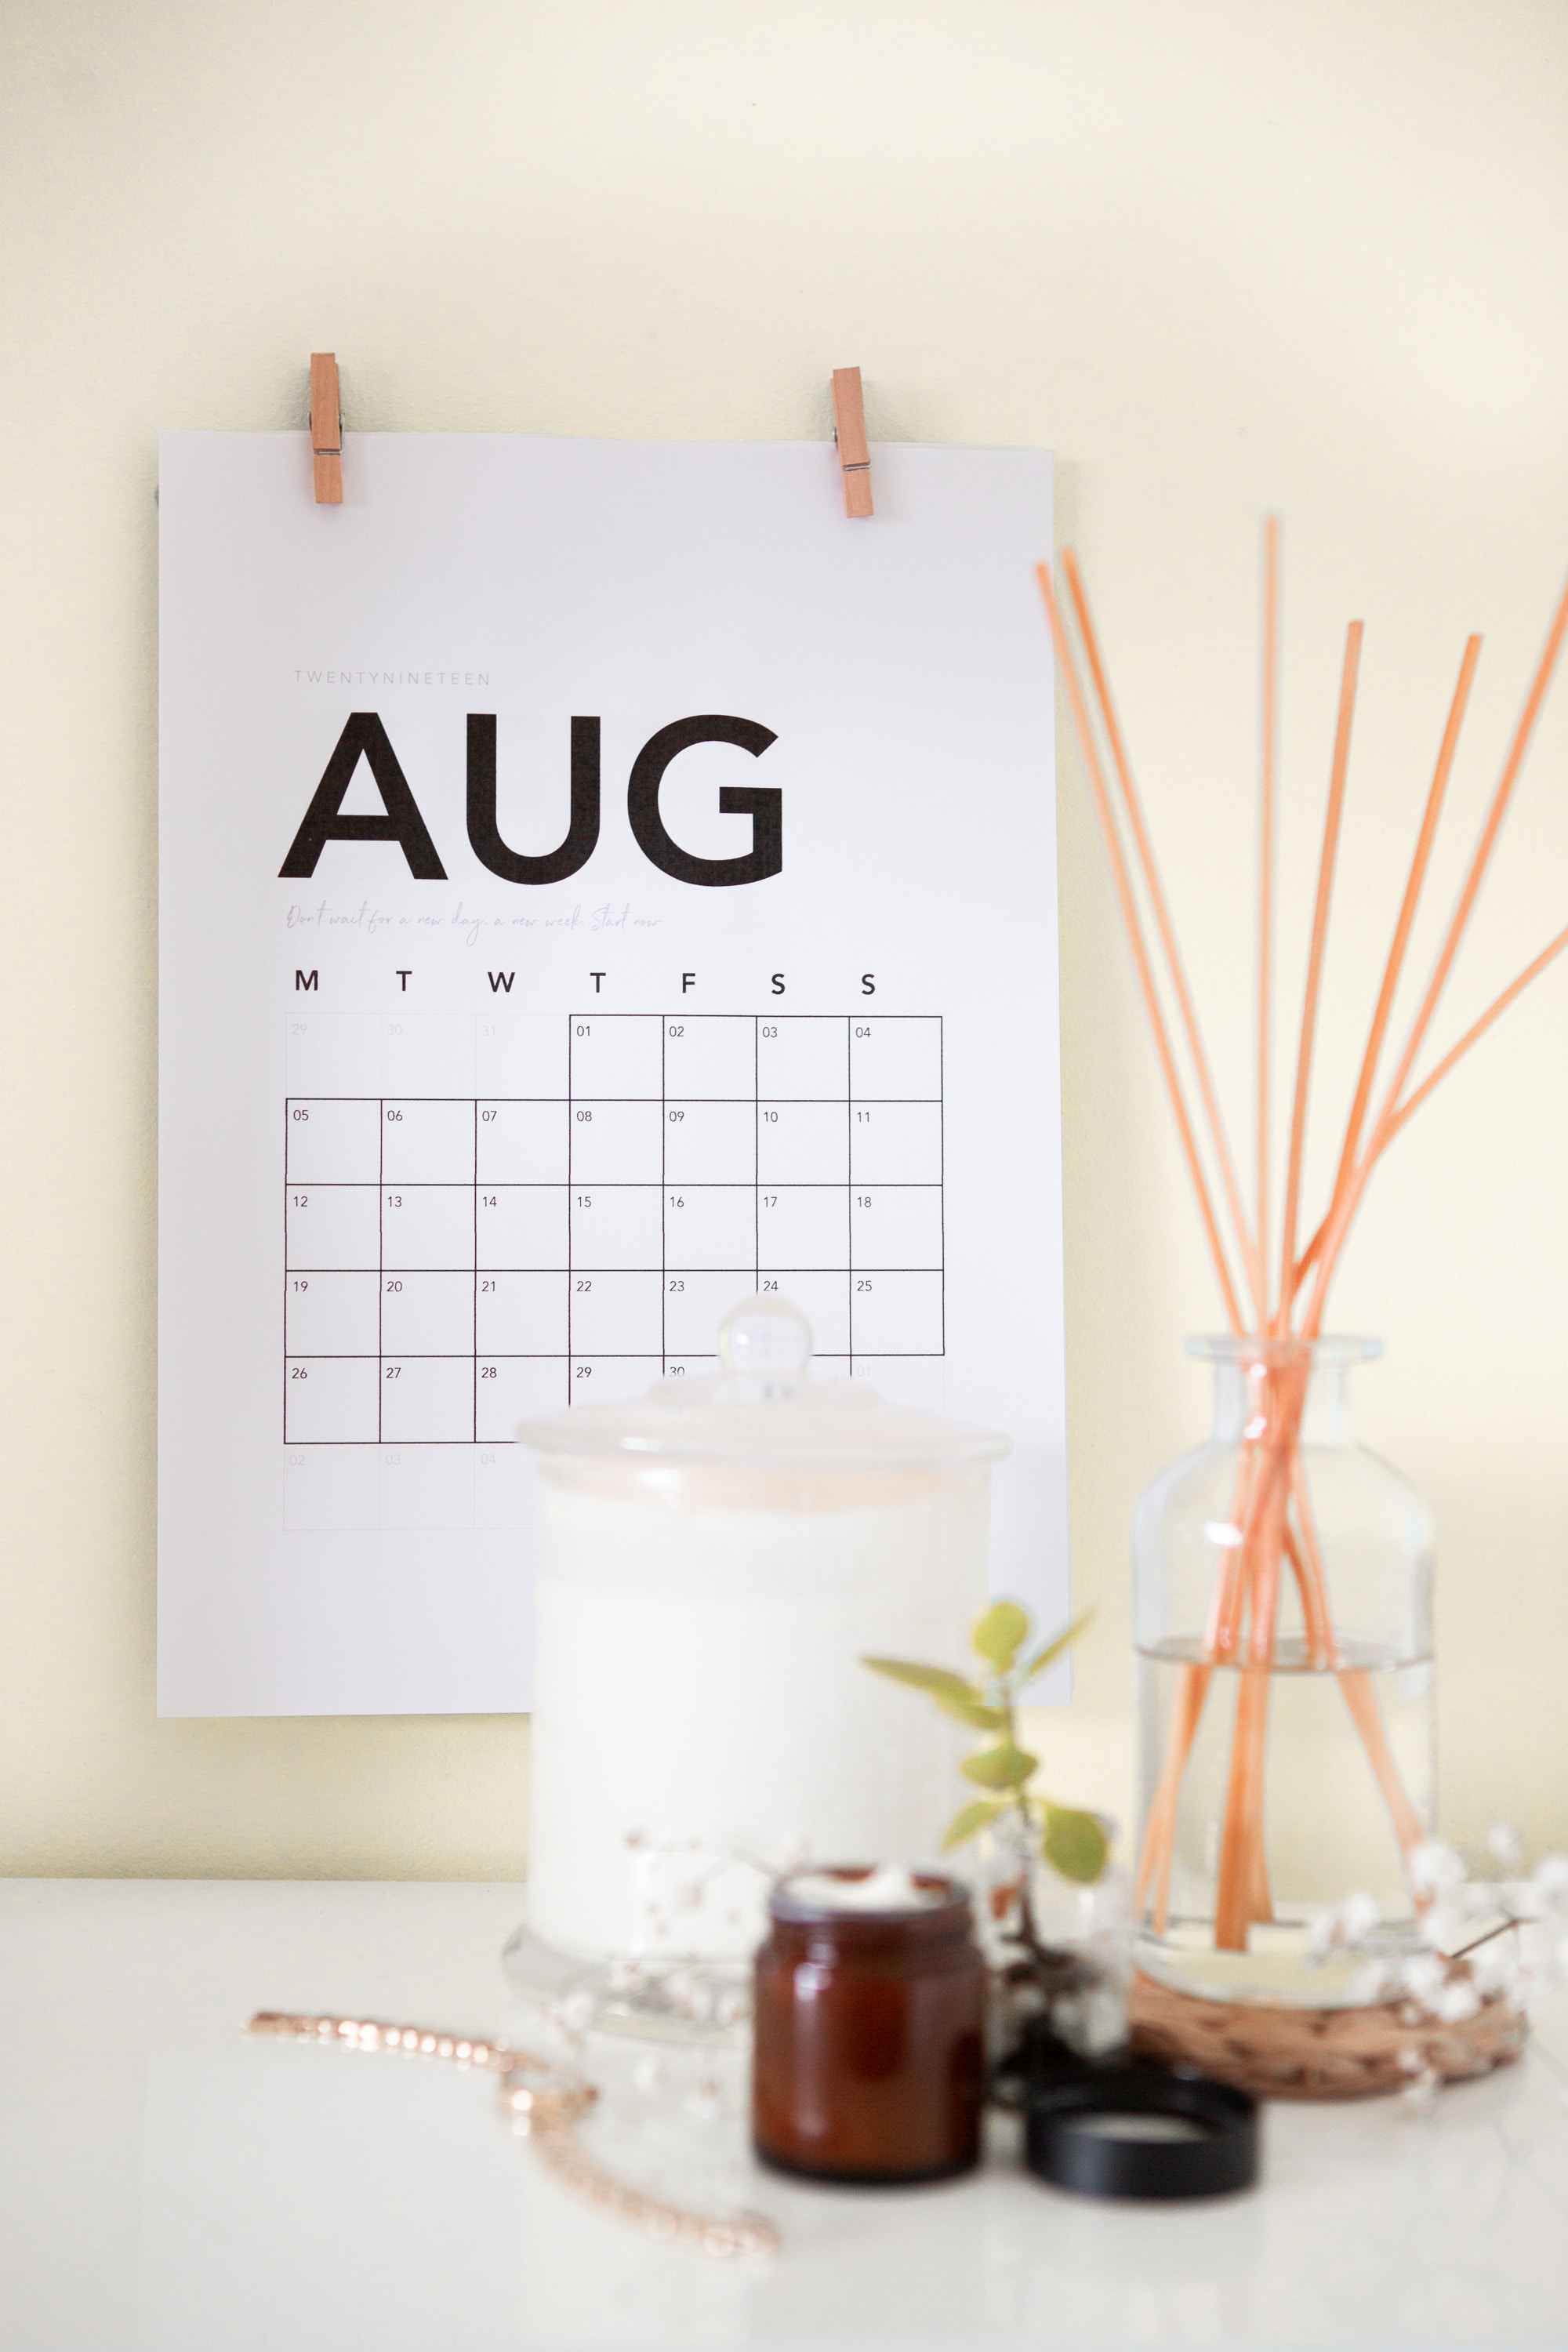 August calendar for Jean-Luc Andriot blog 072919